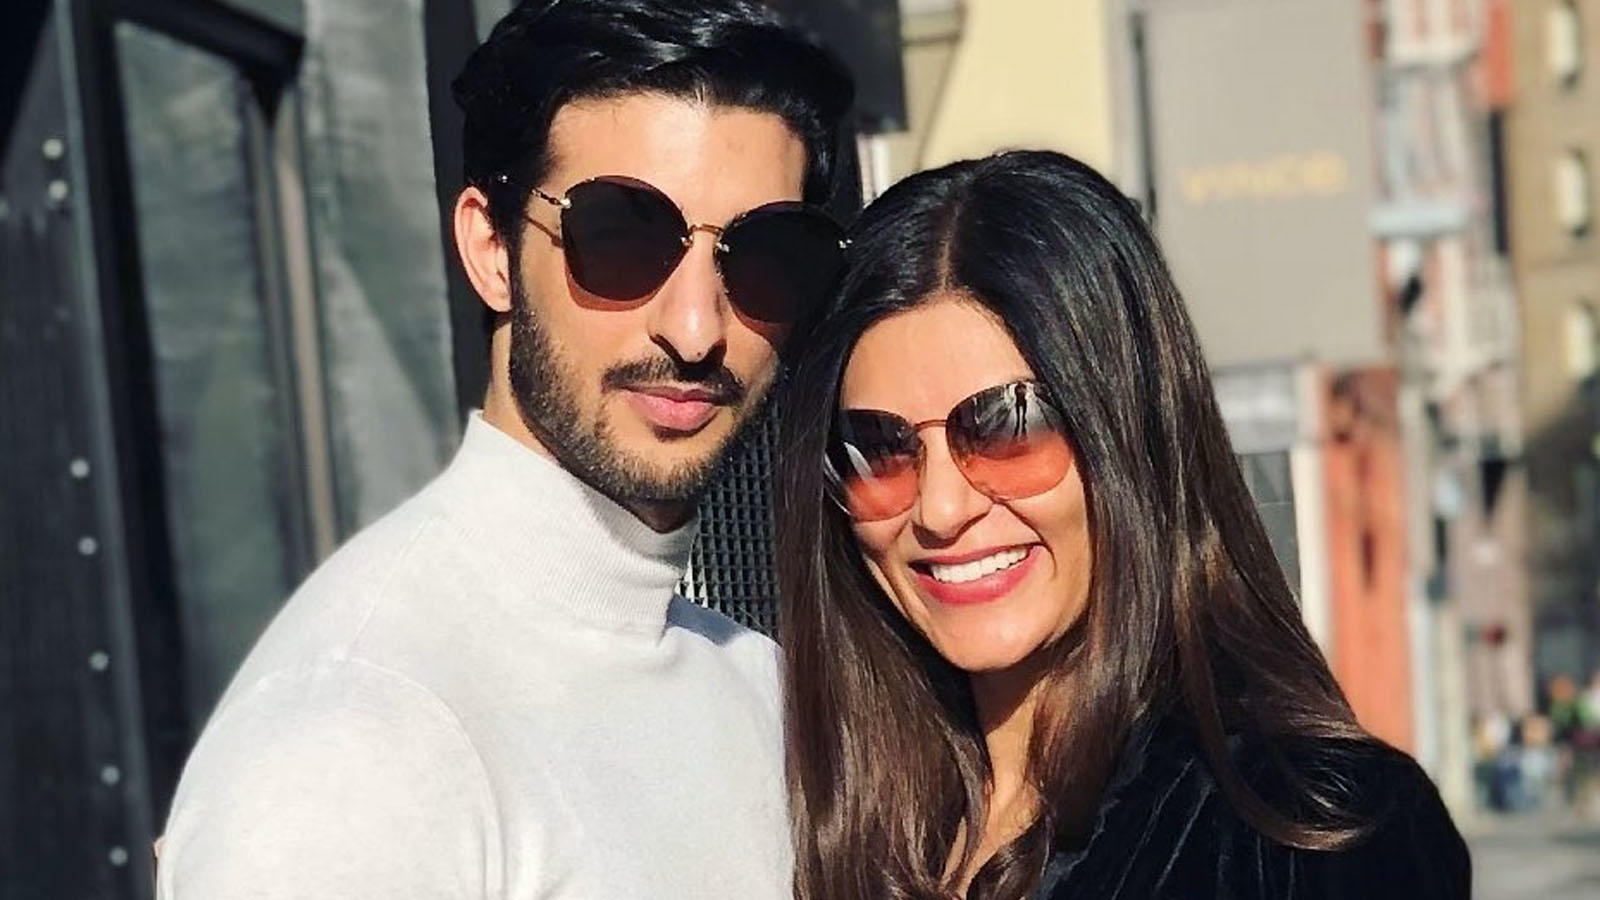 Sushmita Sen and Rohman Shawl's social media PDA crushes break-up rumours | Hindi Movie News – Bollywood – Times of India